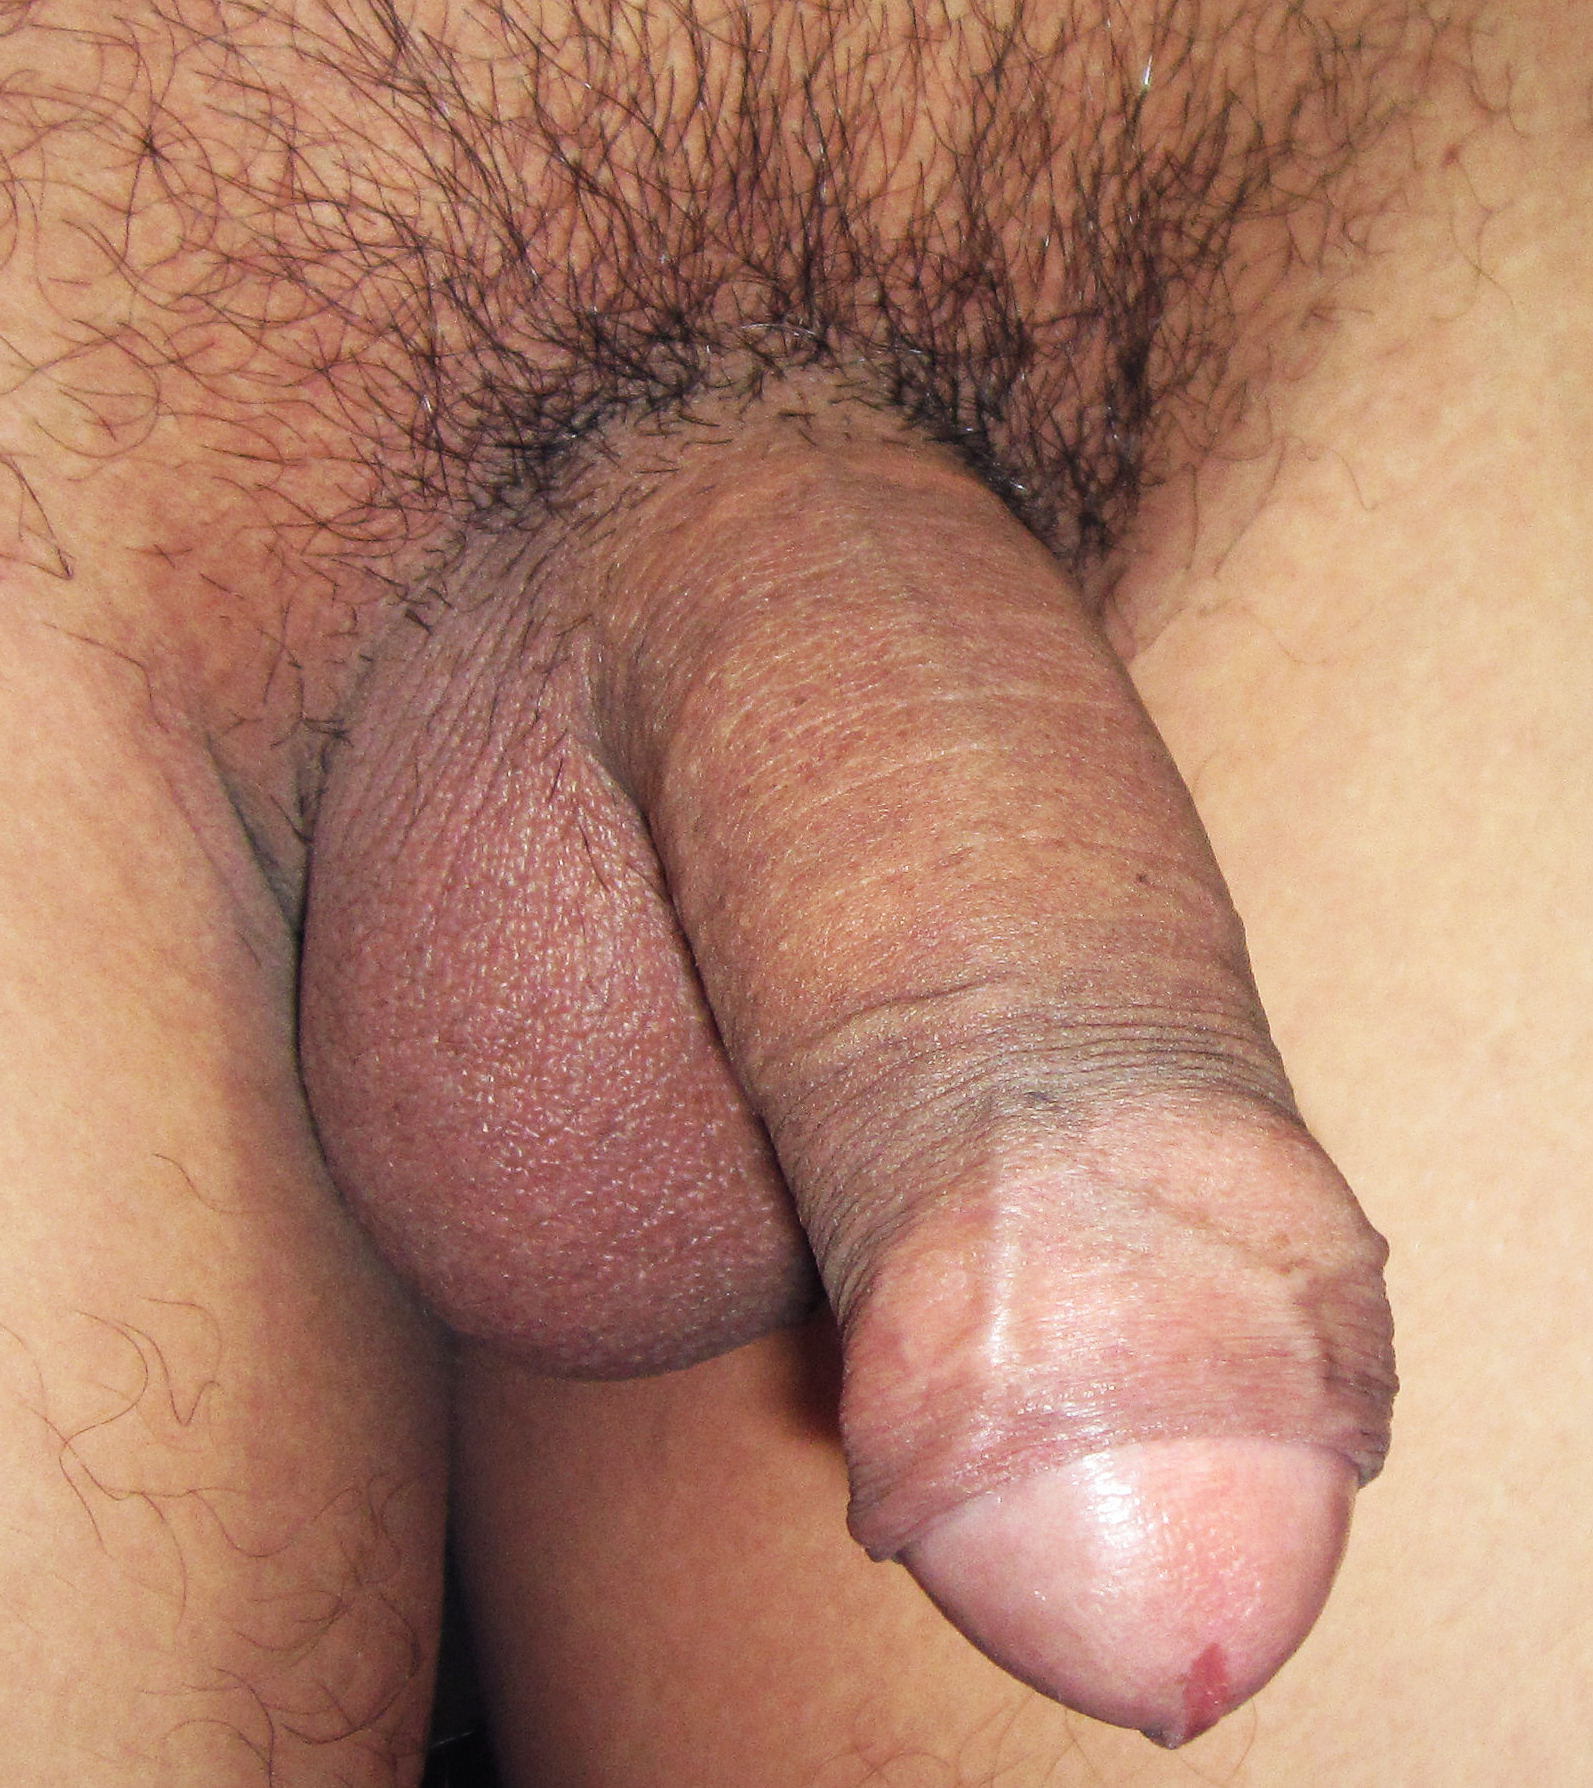 Male shaved genitals images